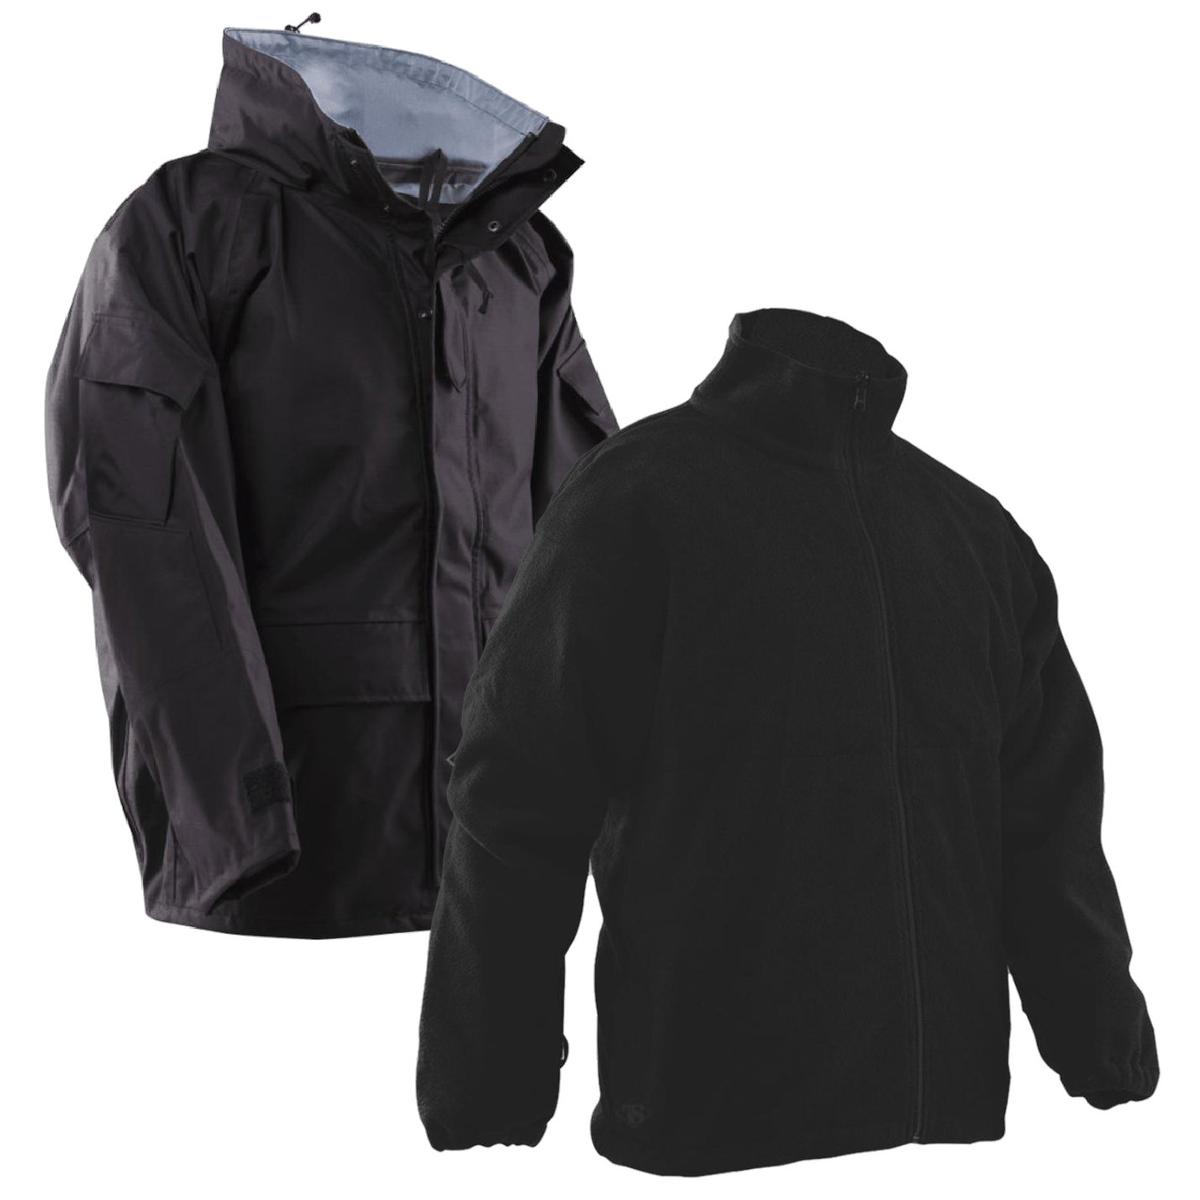 Tru-Spec H2O Proof Gen 2 ECWCS Parka w/Lightweight Polar Fleece Jacket